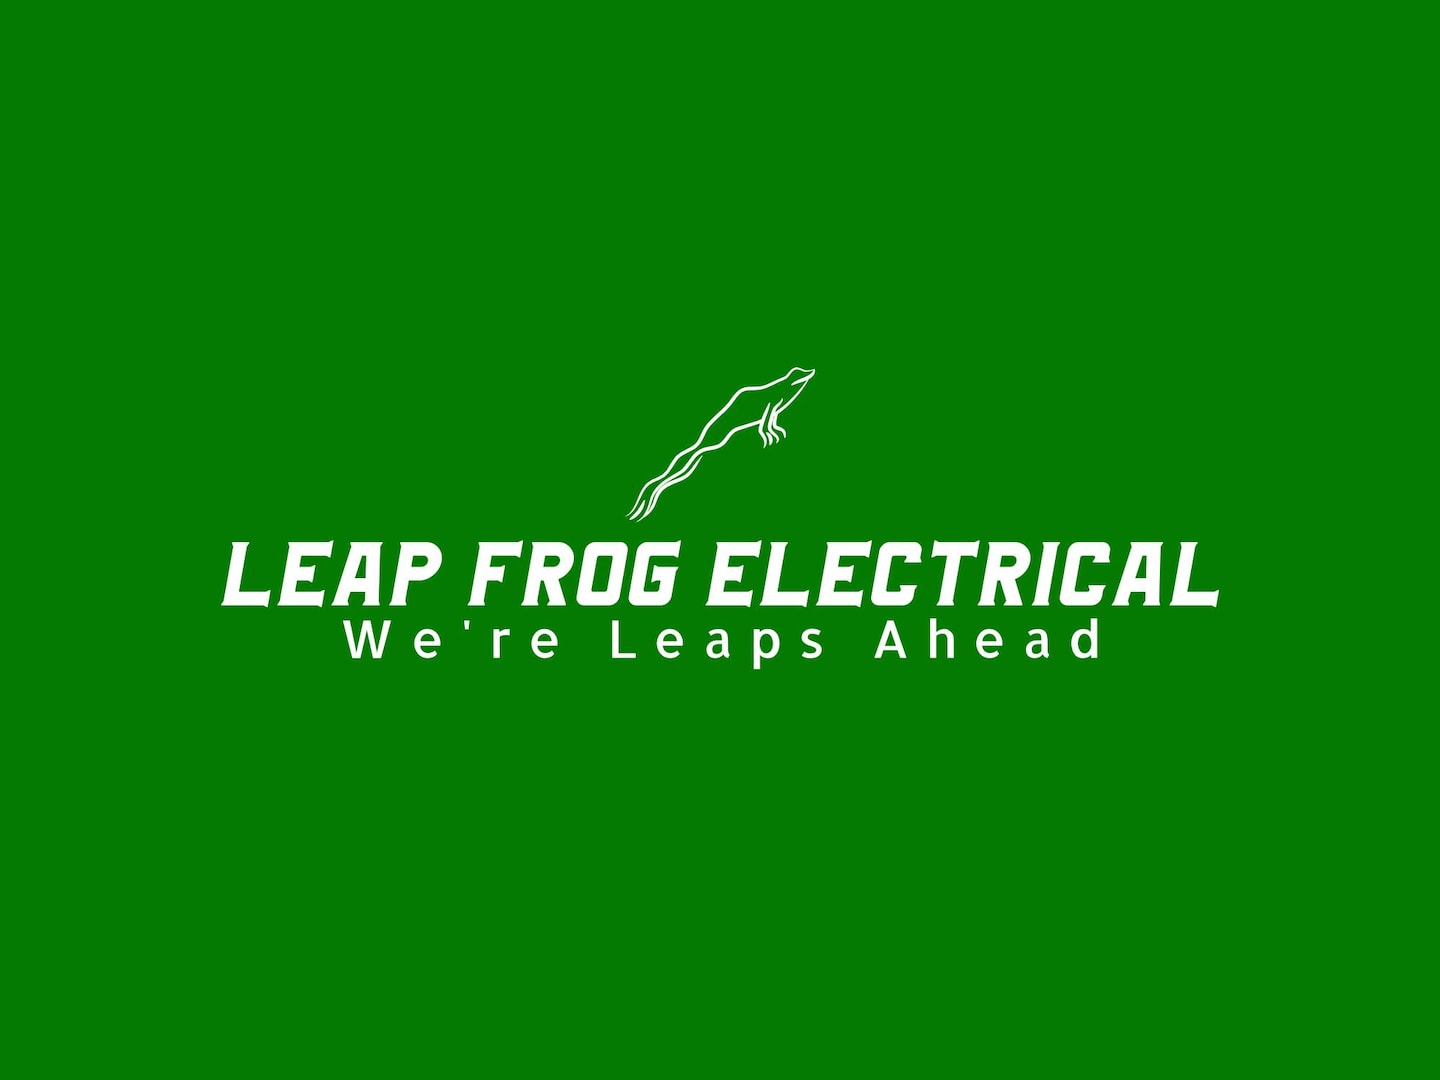 Leap Frog Electrical LLC